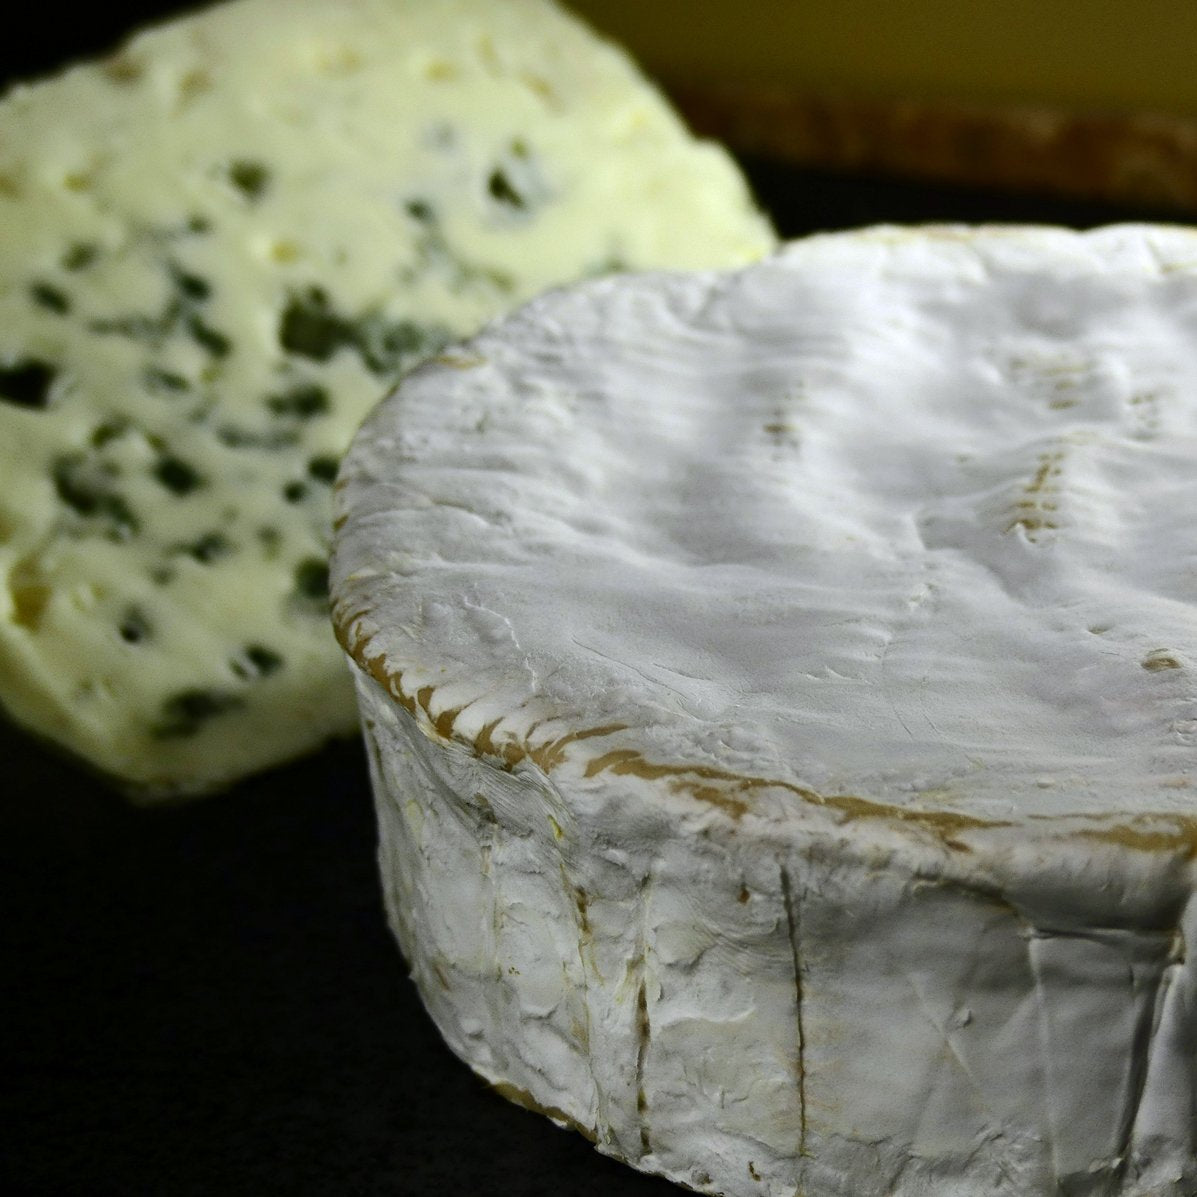 Camember et Roquefort - Souvenir de France